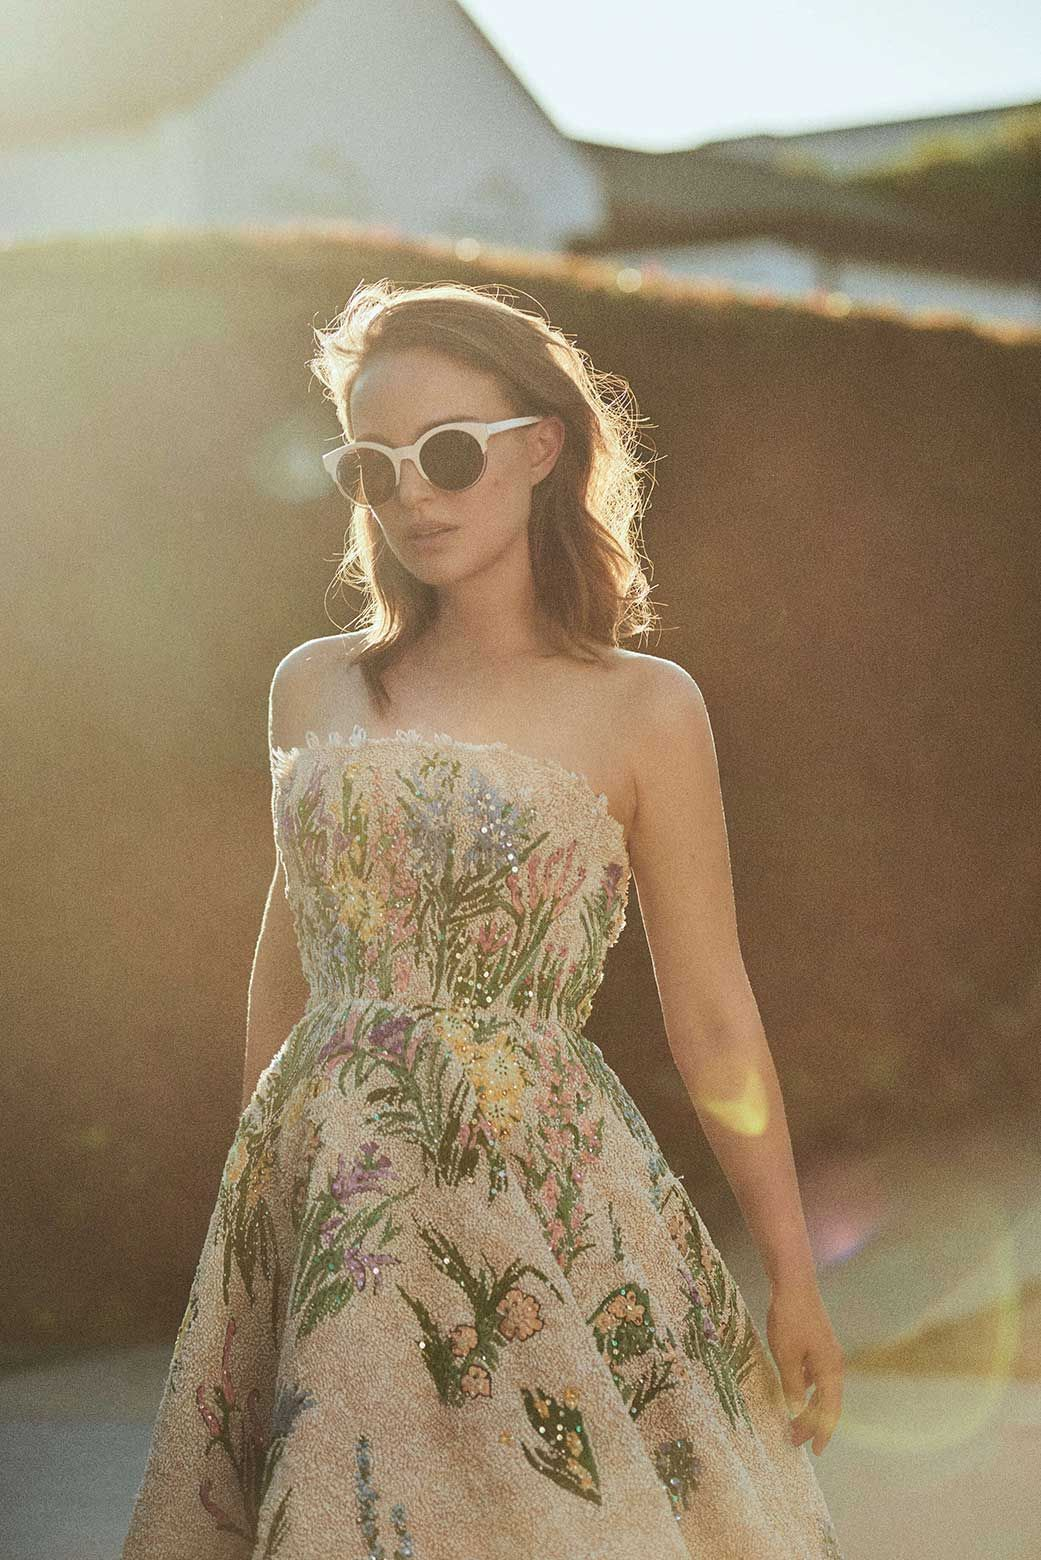 A Behind The Scenes Look At Natalie Portman S Miss Dior Shoot In